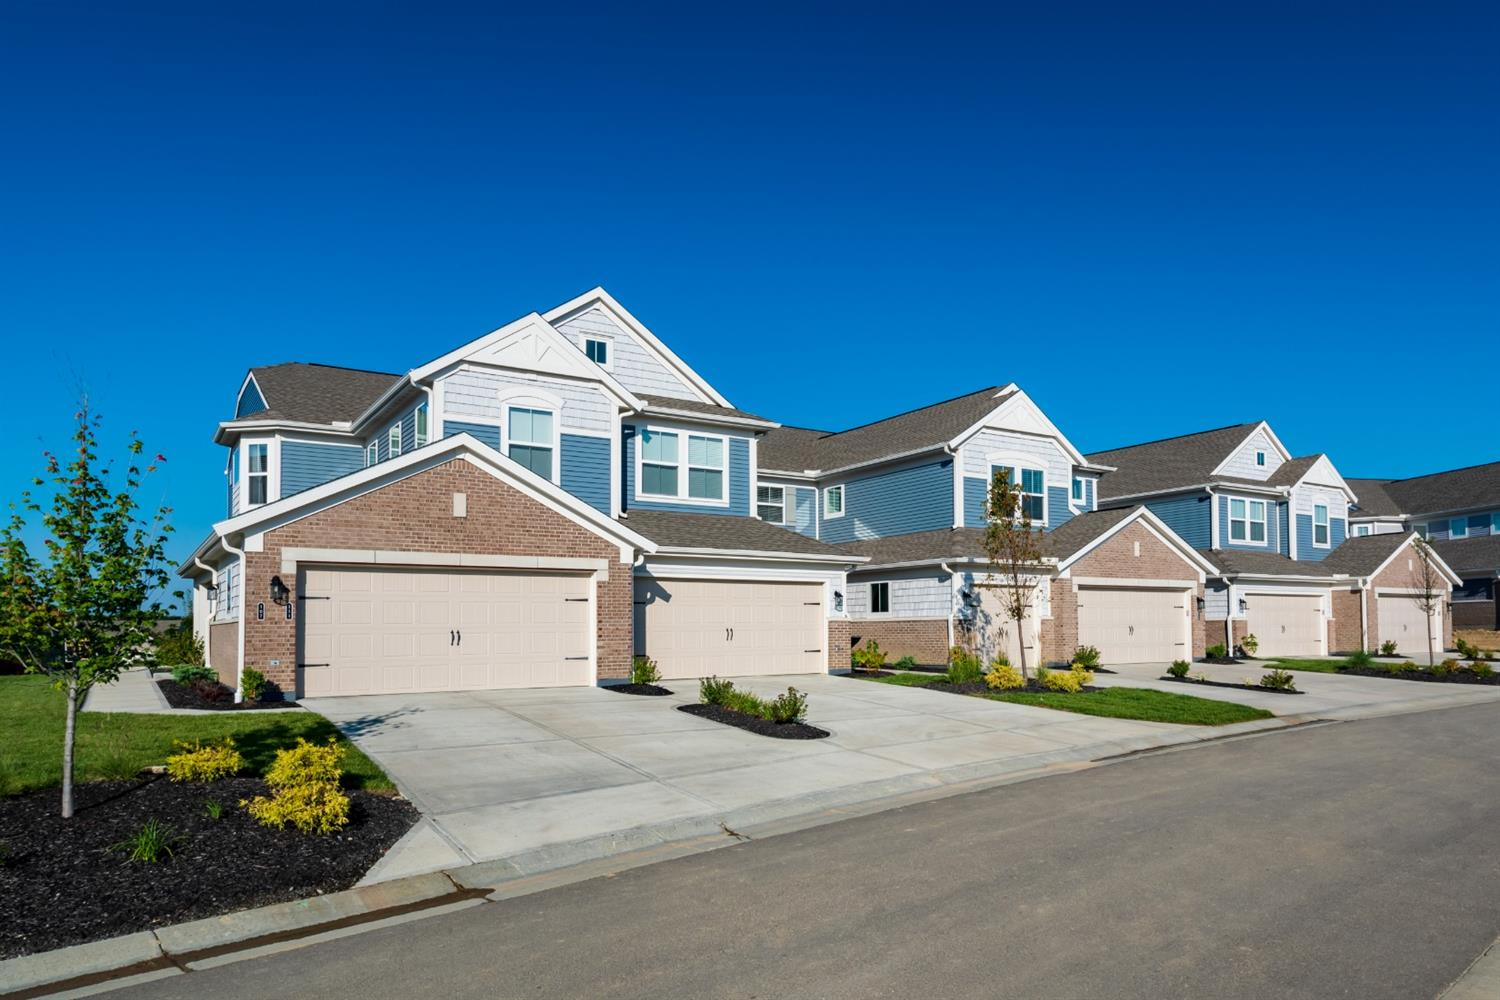 Property for sale at 122 Rippling Brook Lane Unit: 9-303, Springboro,  OH 45066